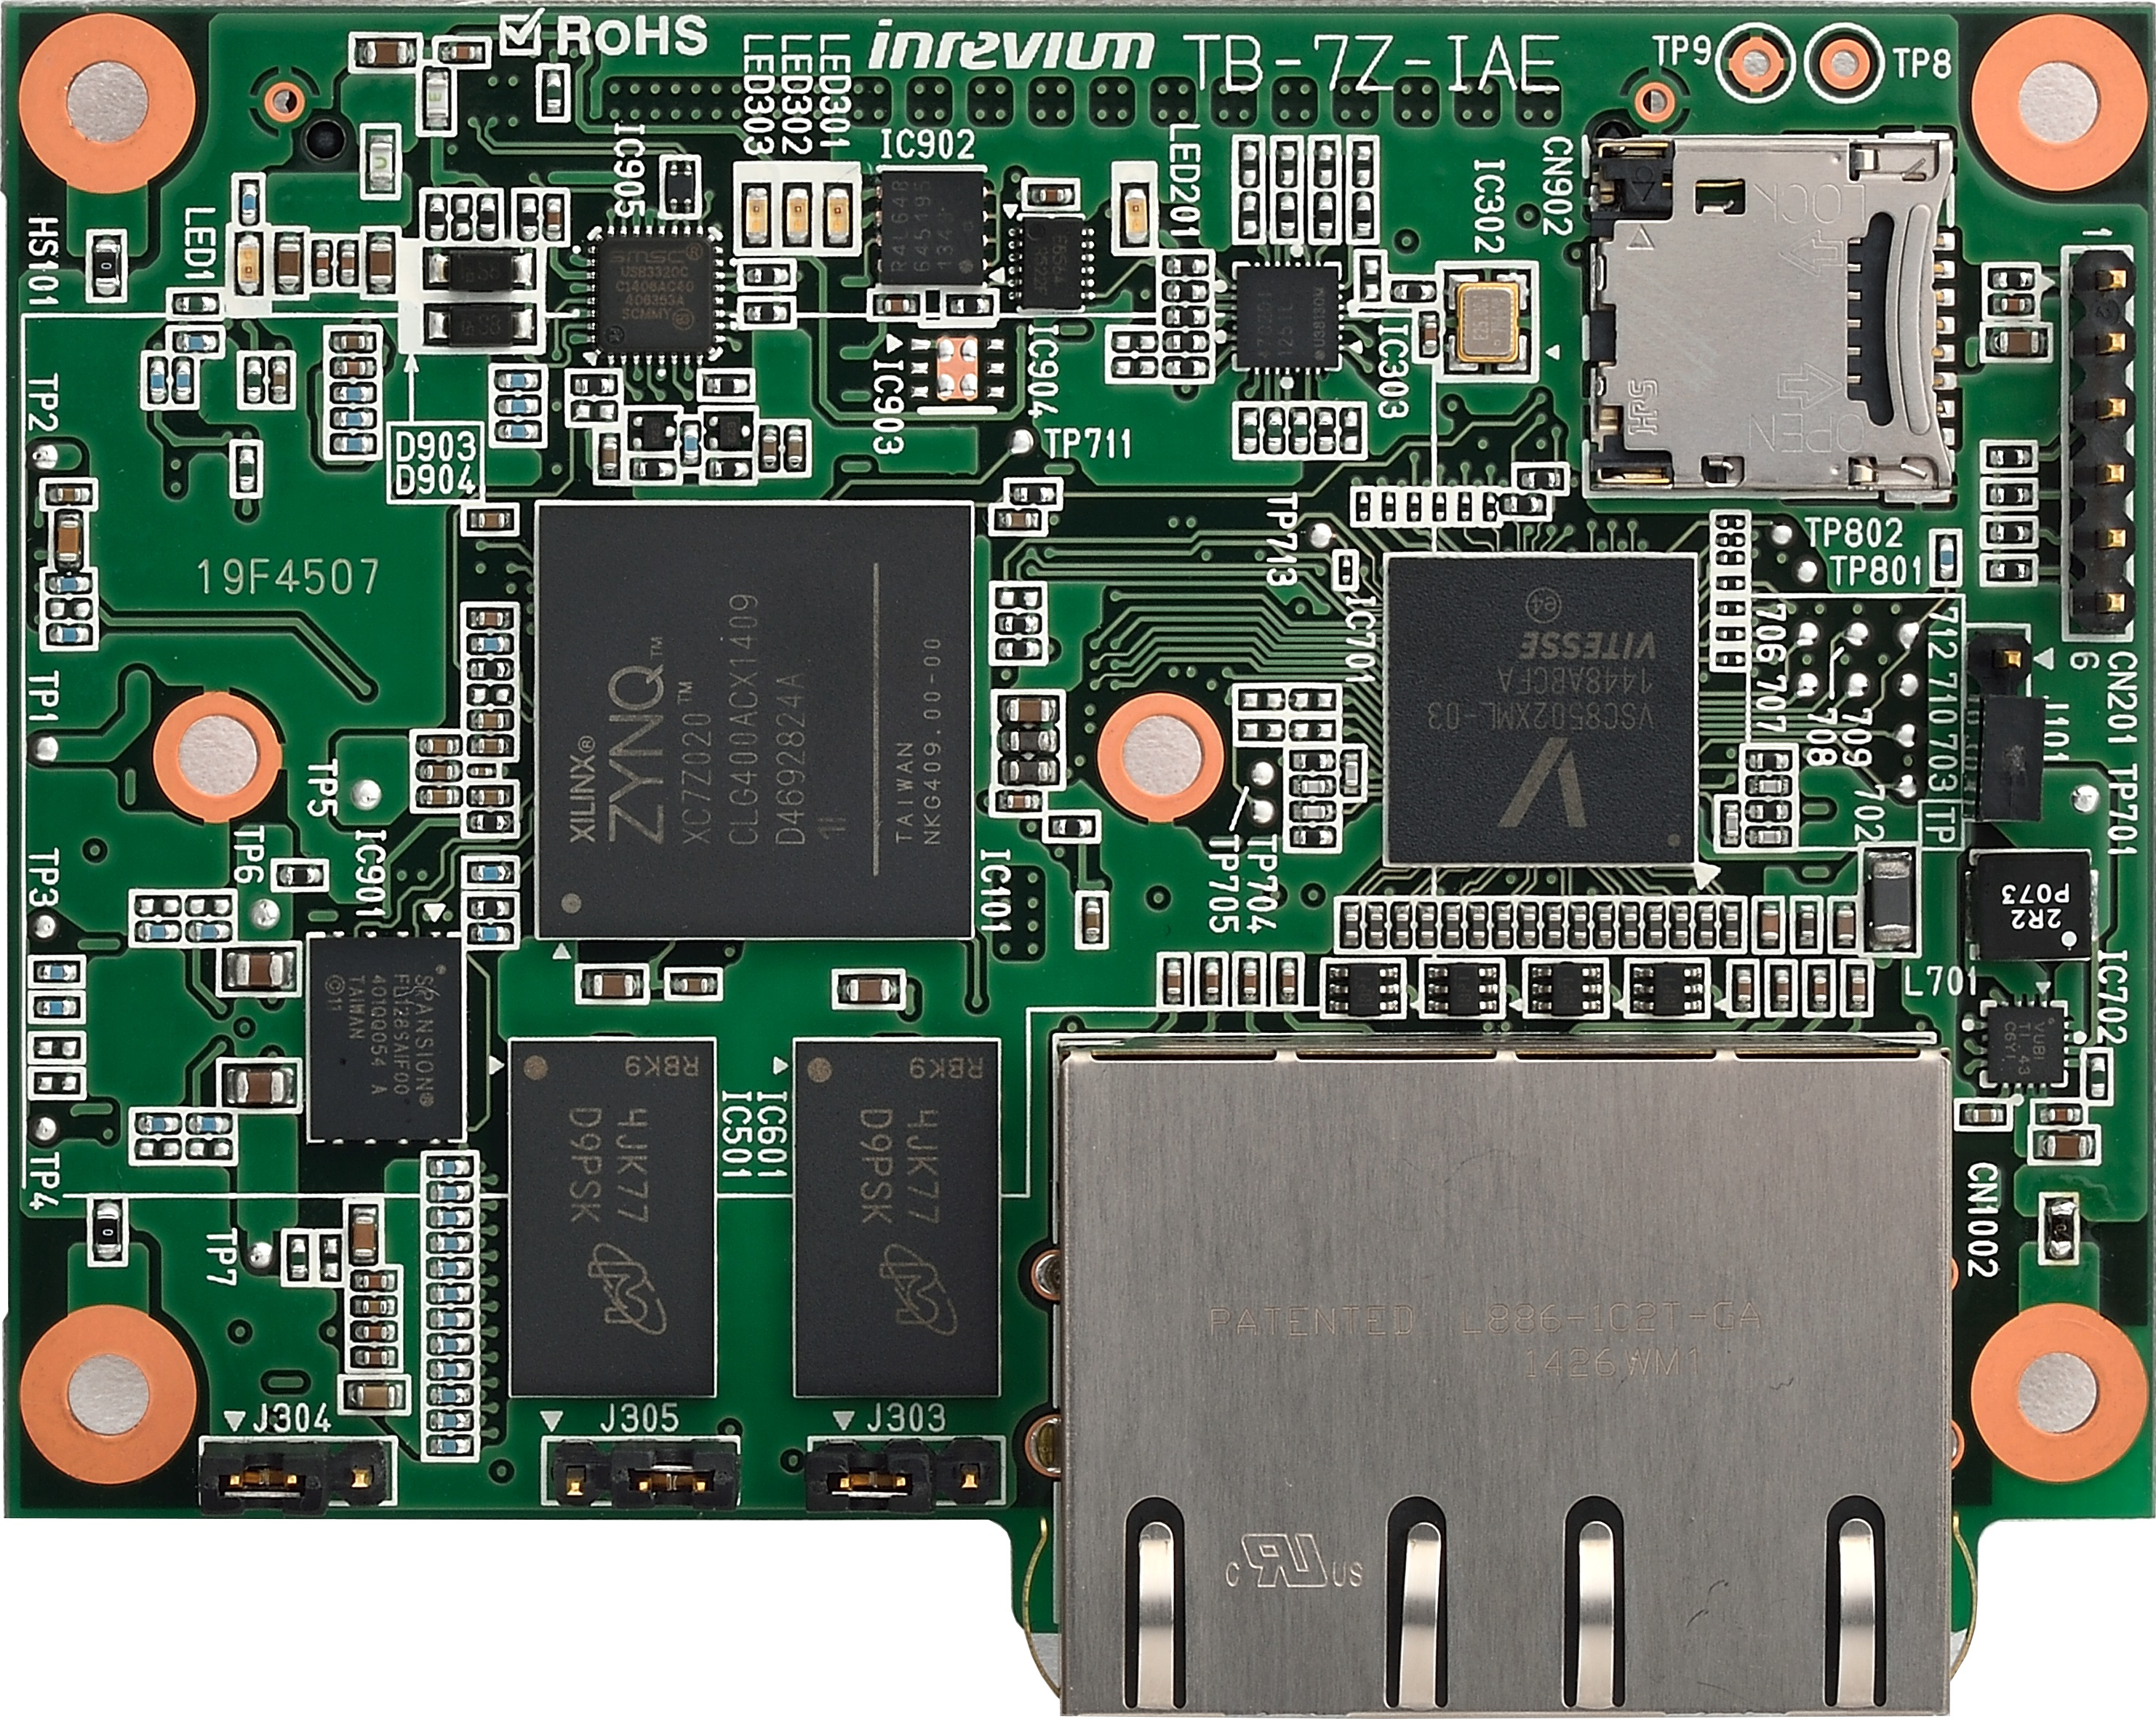 Industrial Grade SOM (System On Module)